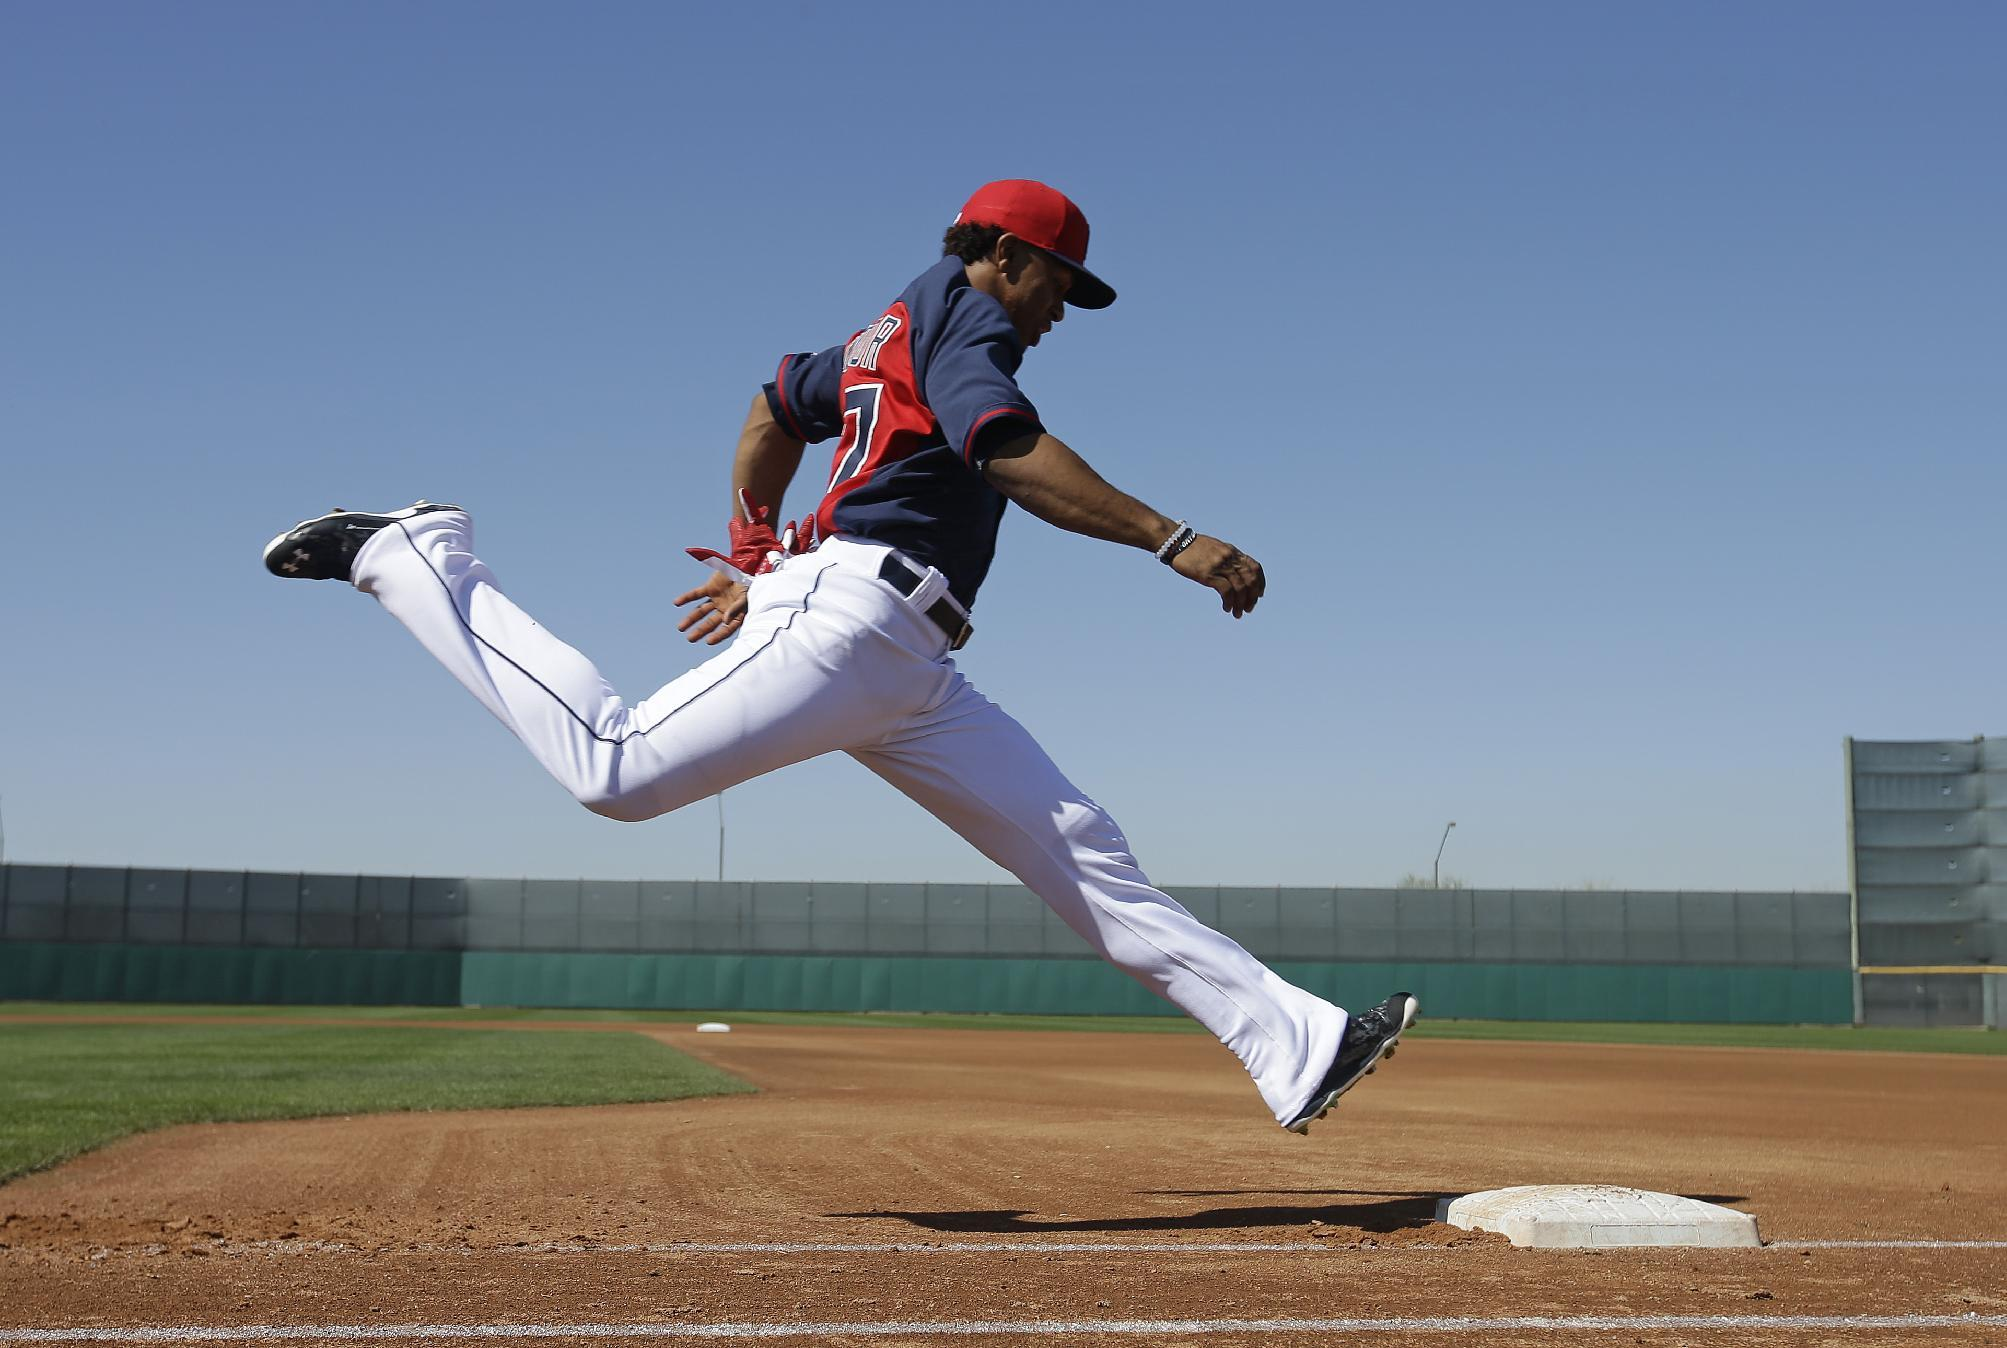 Indians' prospect Lindor shines in 4-2 win over Reds